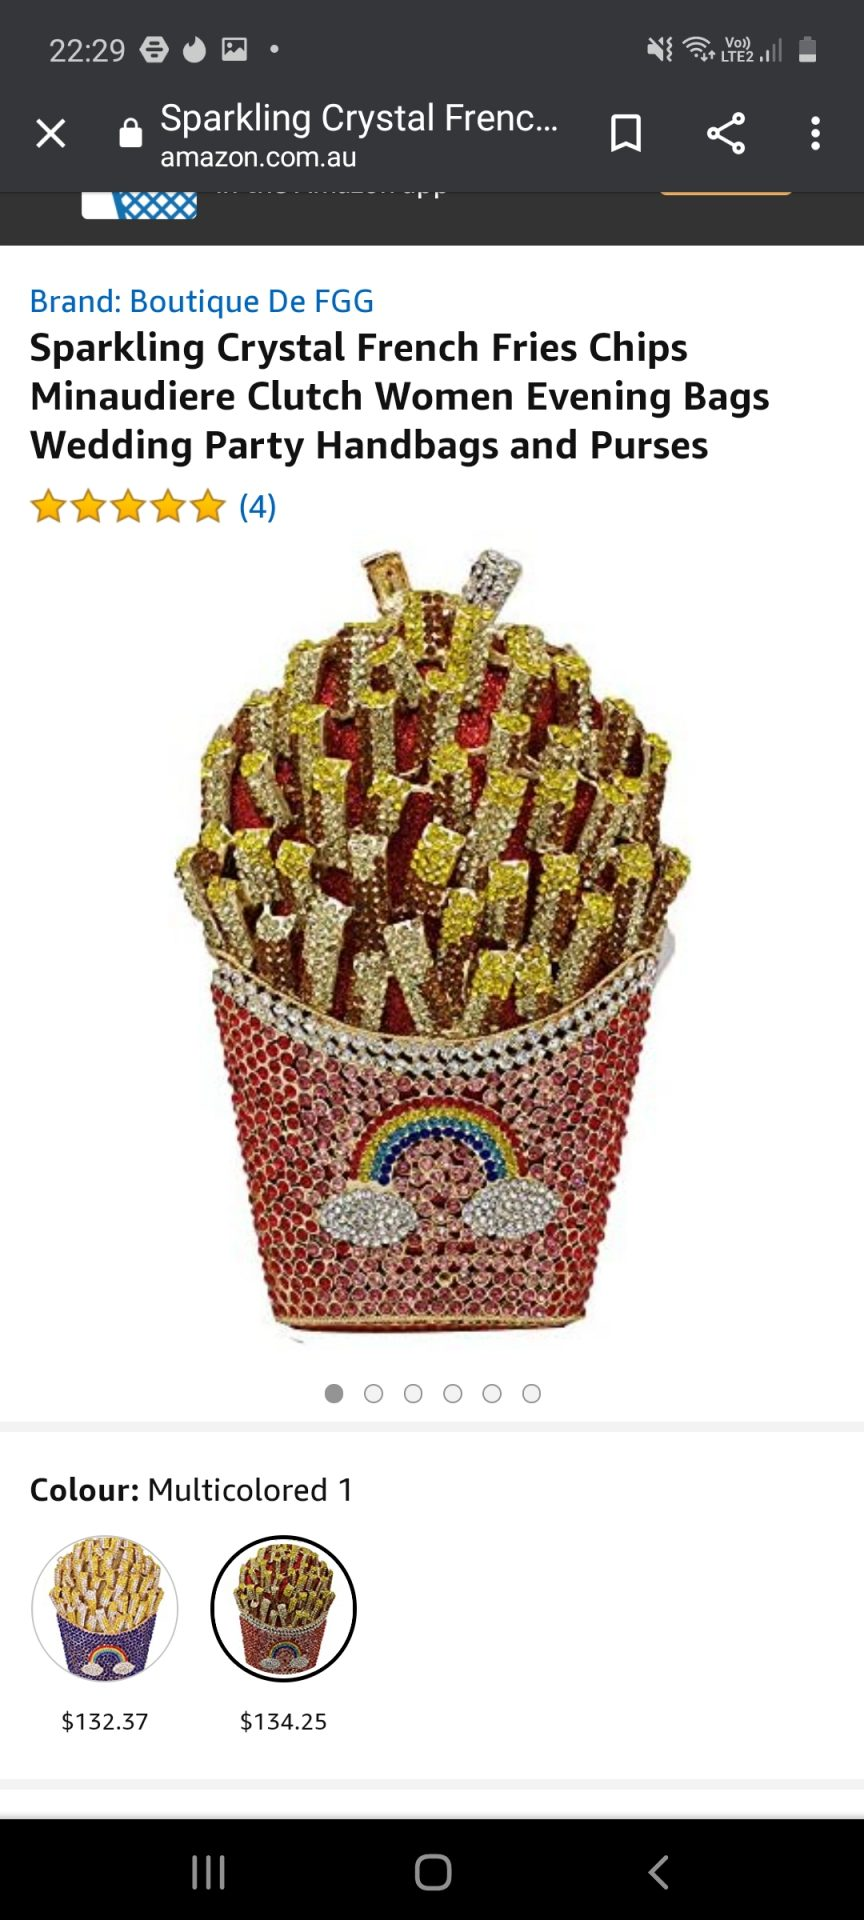 Sparkling Crystal French Fries Chips Minaudiere Clutch Women Evening Bags Wedding Party Handbags and Purses